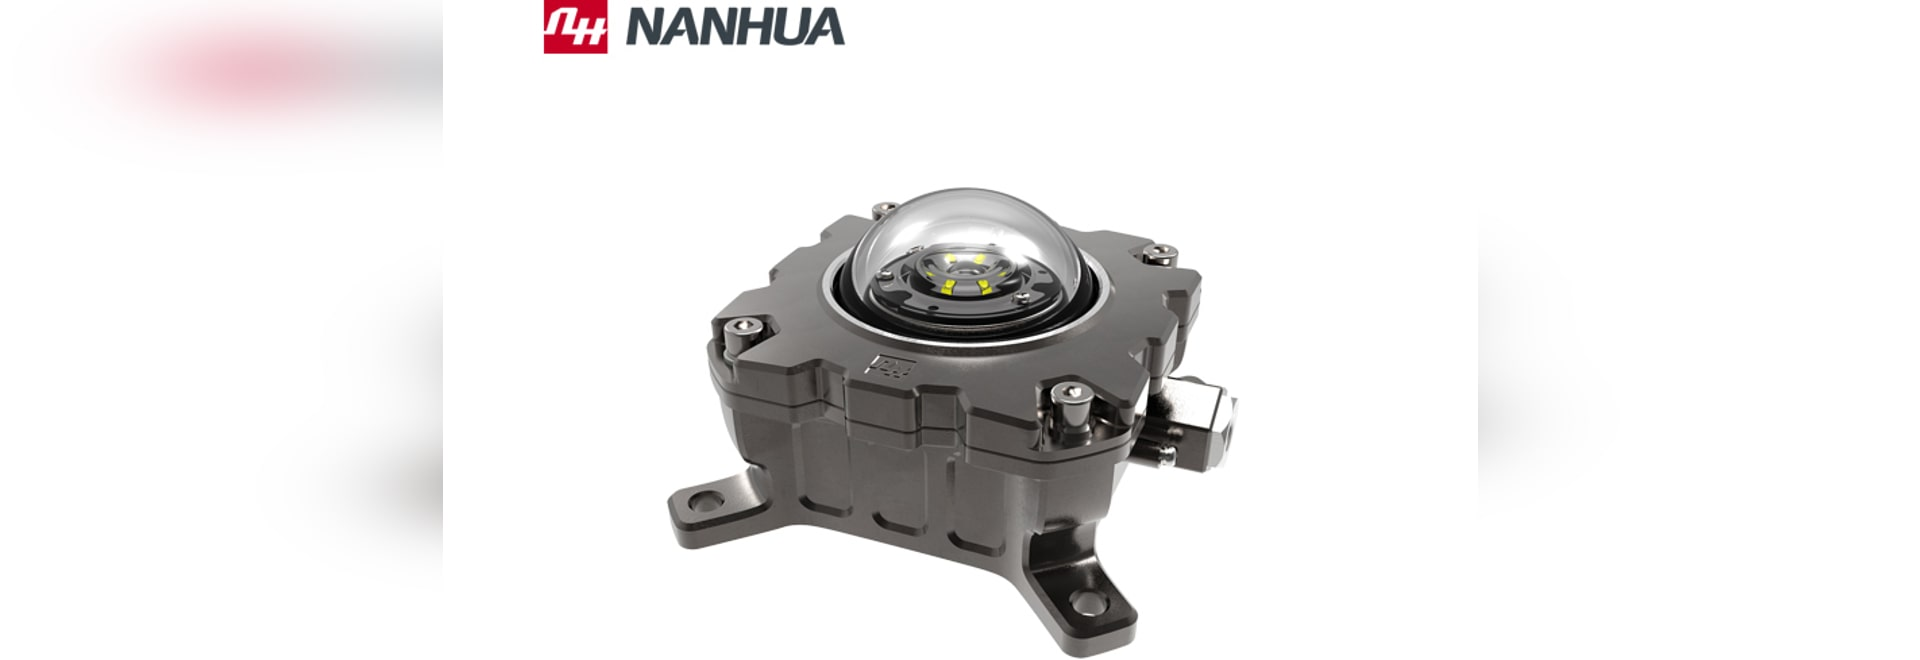 explosion protected and safety of luminaires